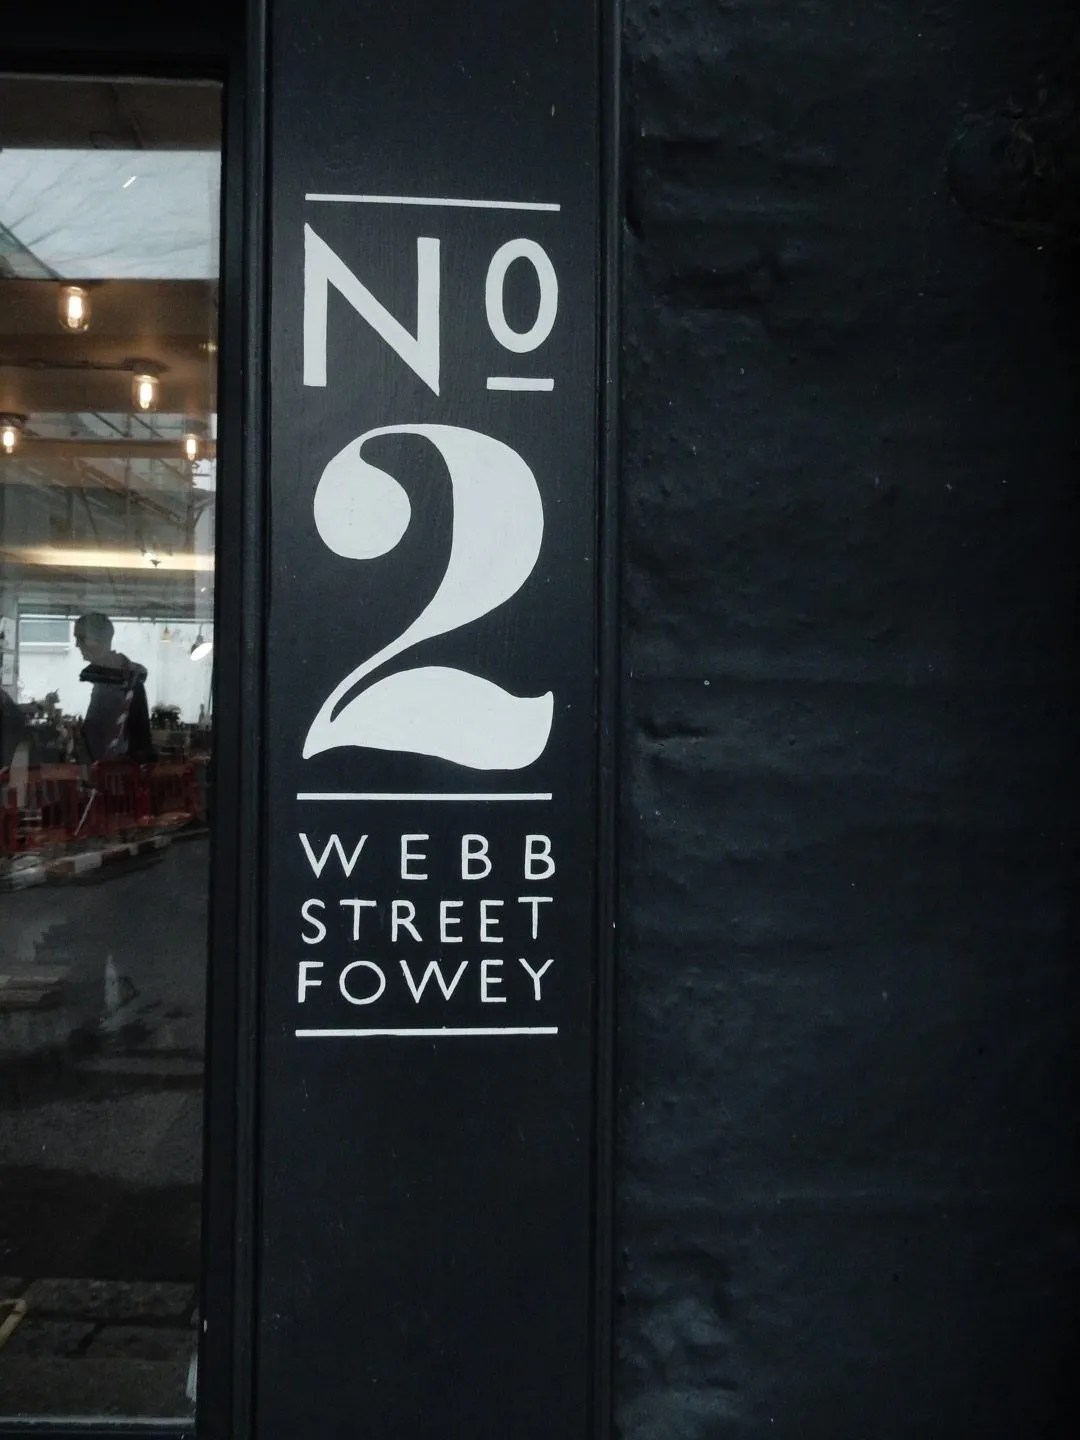 No 2 Webb Street Company Fowey sign